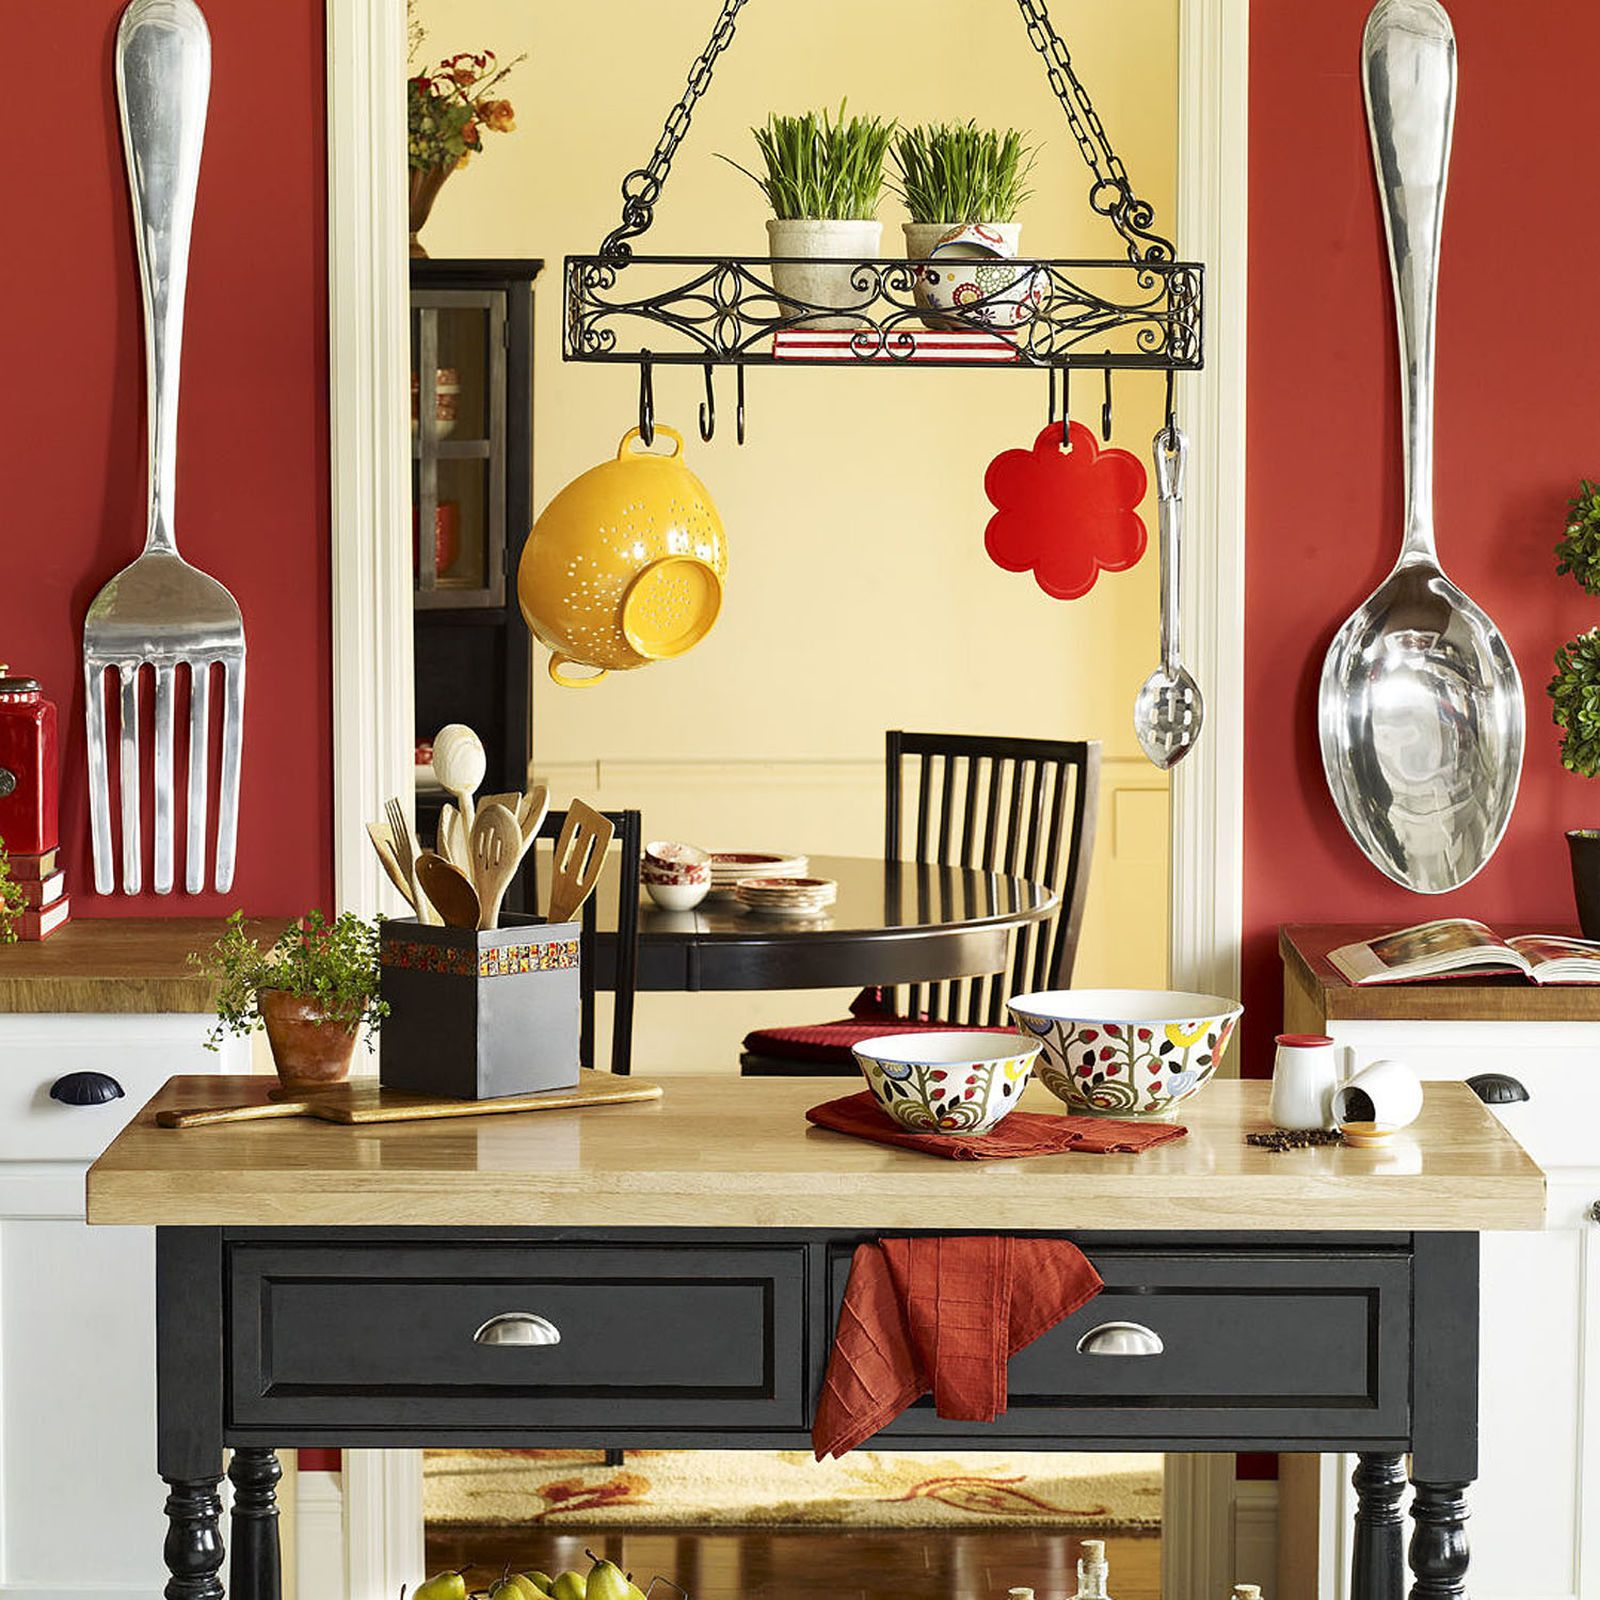 Silver Fork and Spoon Wall Décor | Pier 1 Imports - I want these ...